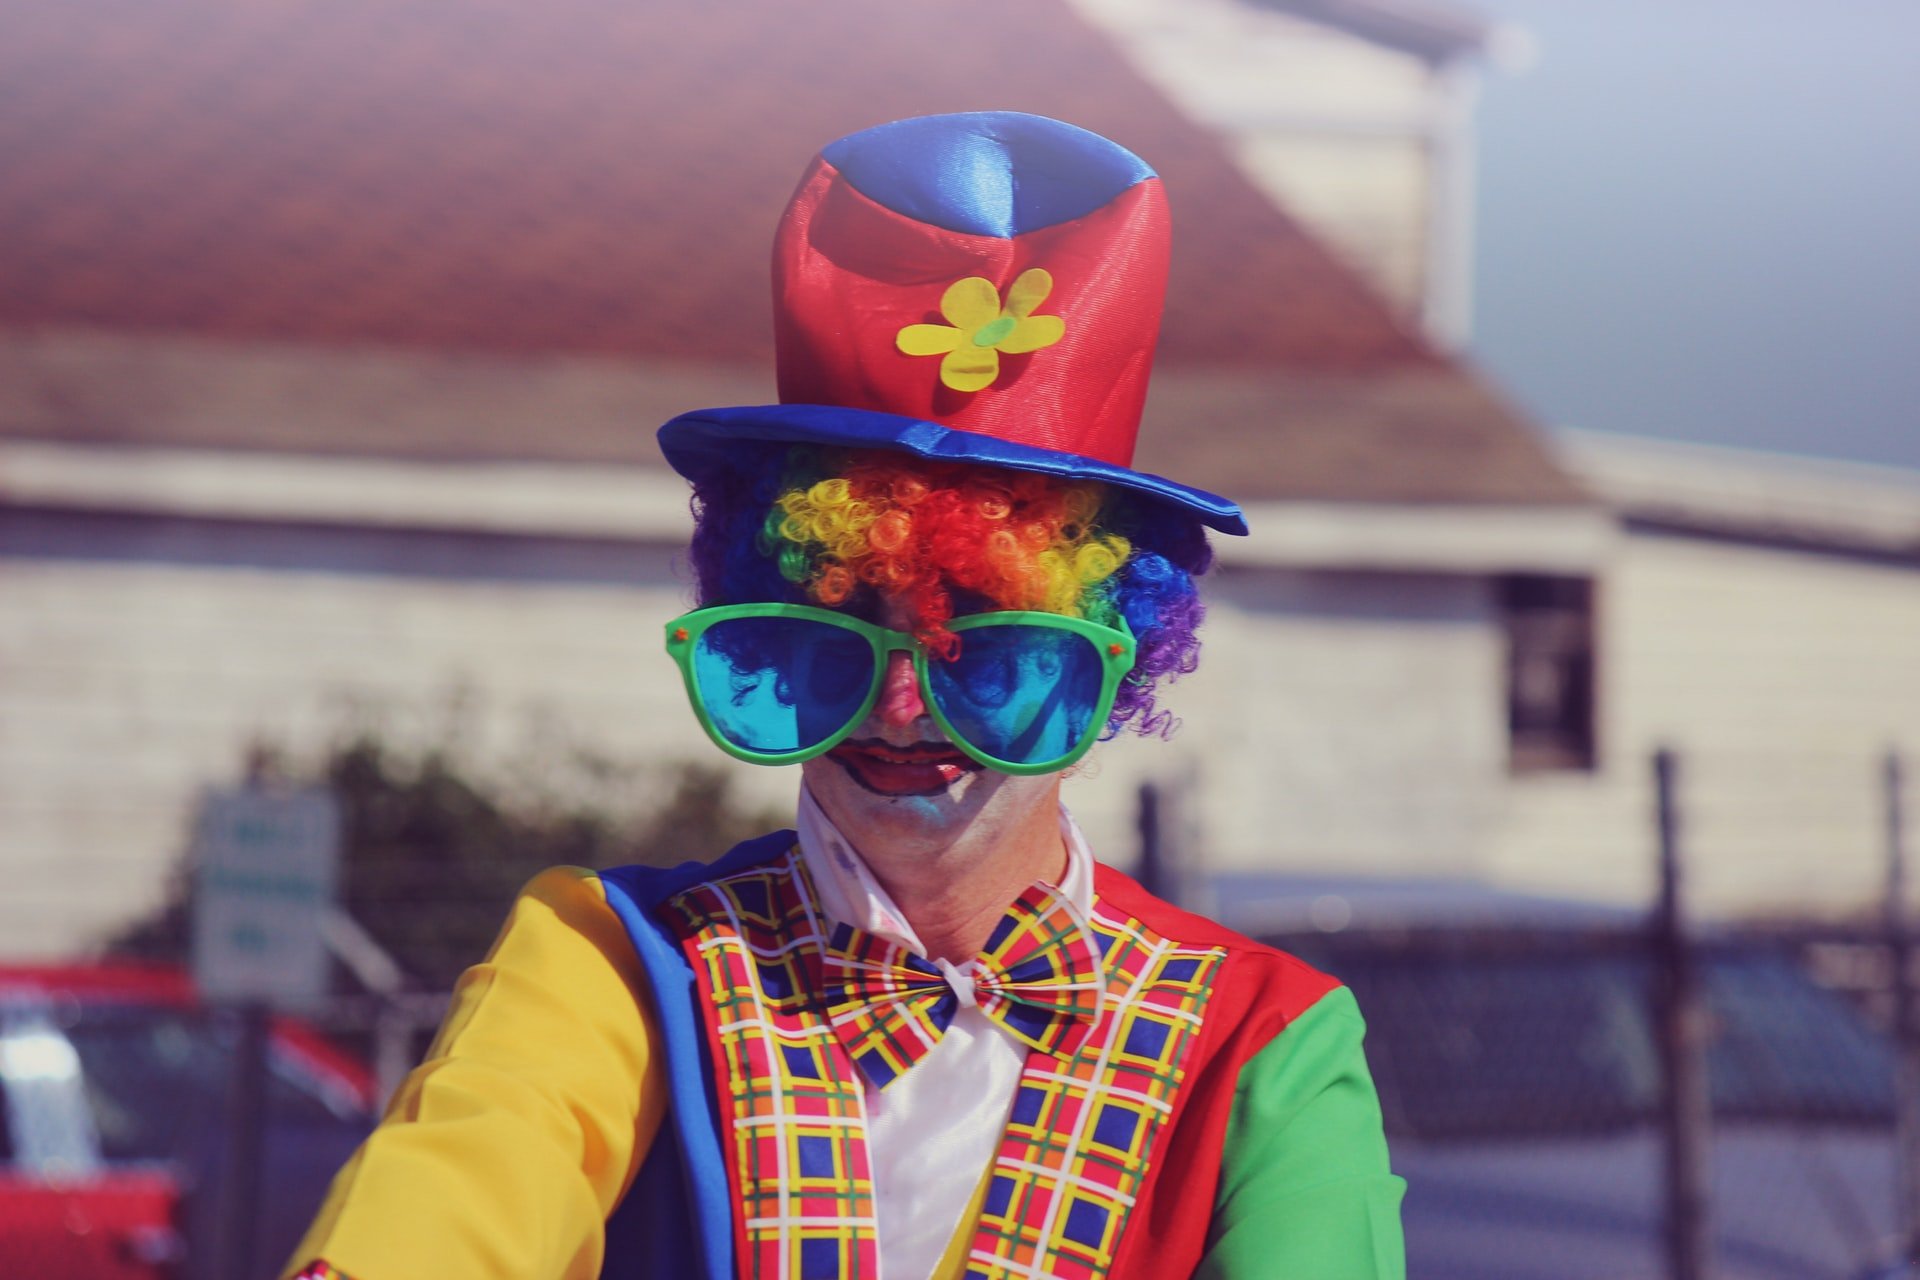 Don't try these 5 ridiculous content marketing ideas unless you're bonkers